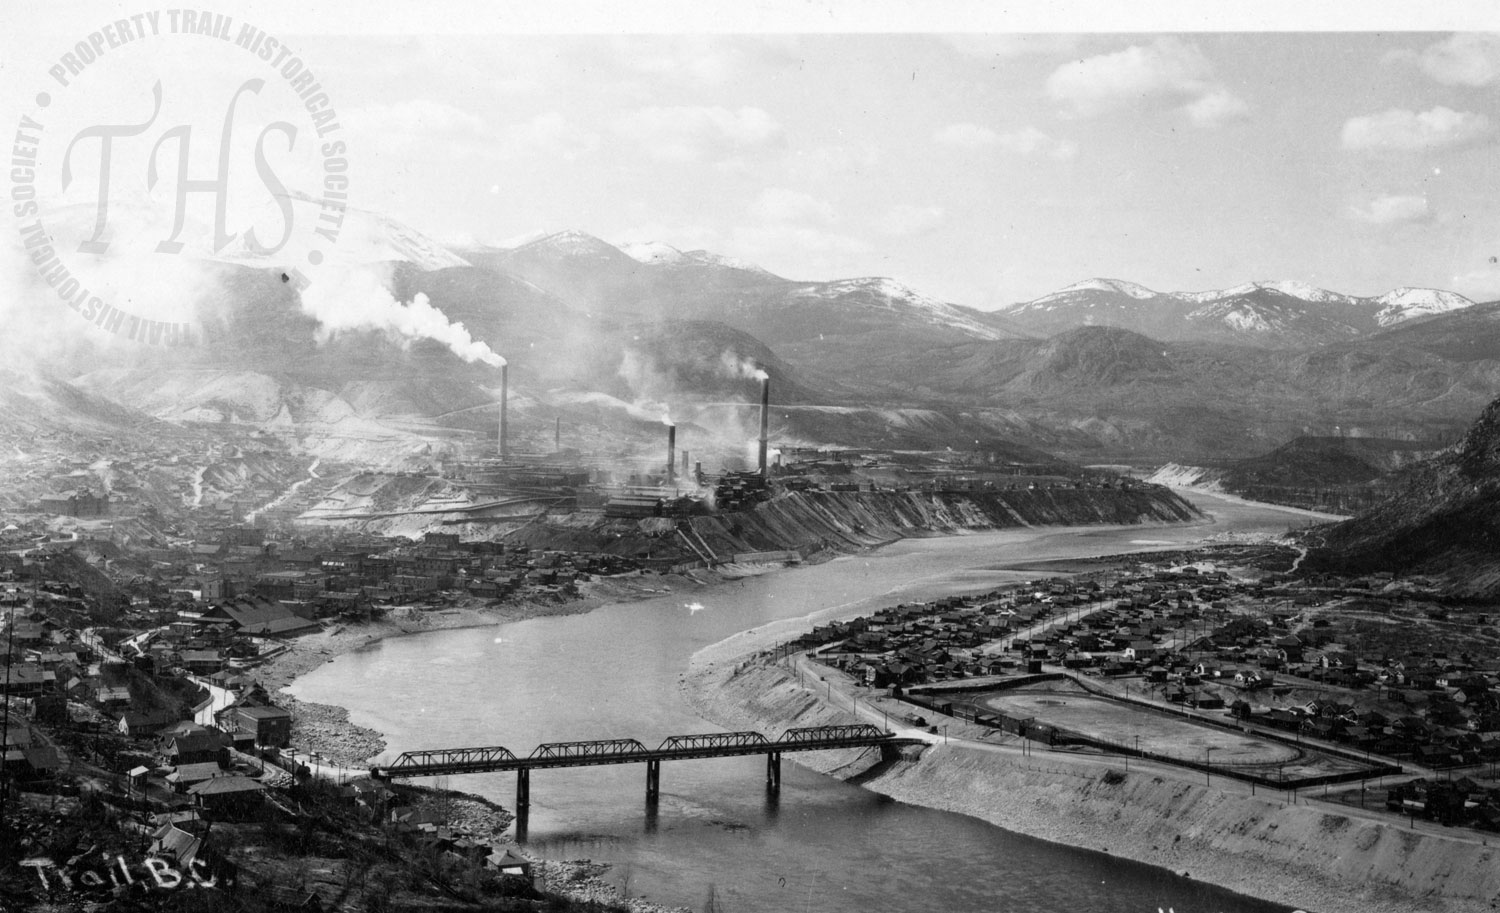 Trail & Smelter, facing north from Casino (Hughes) - 1930